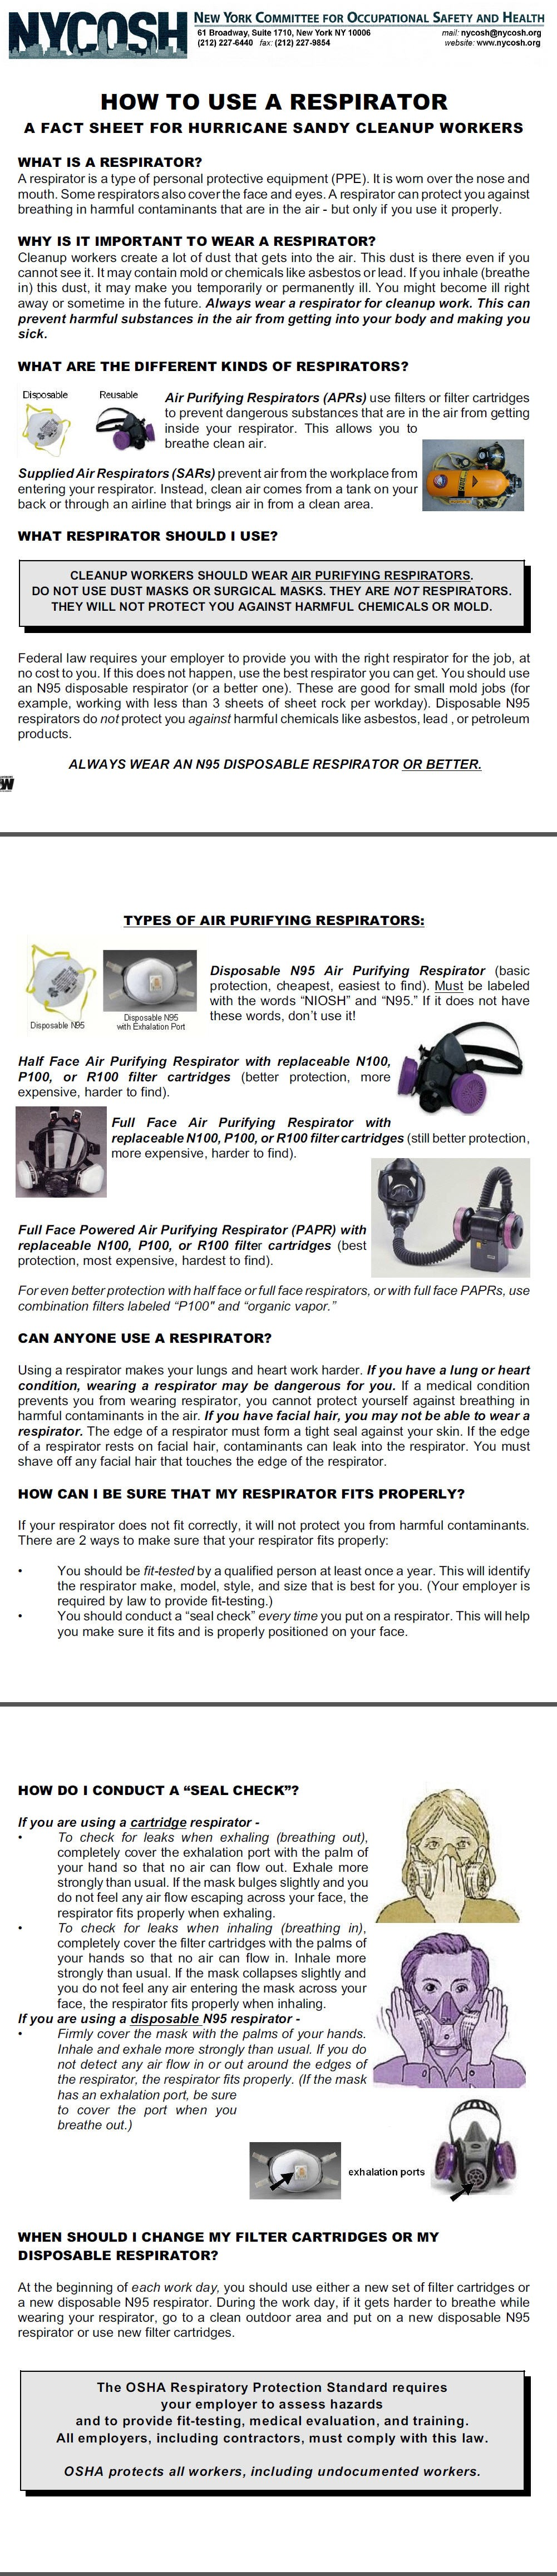 How To Use A Respirator_NYCOSH